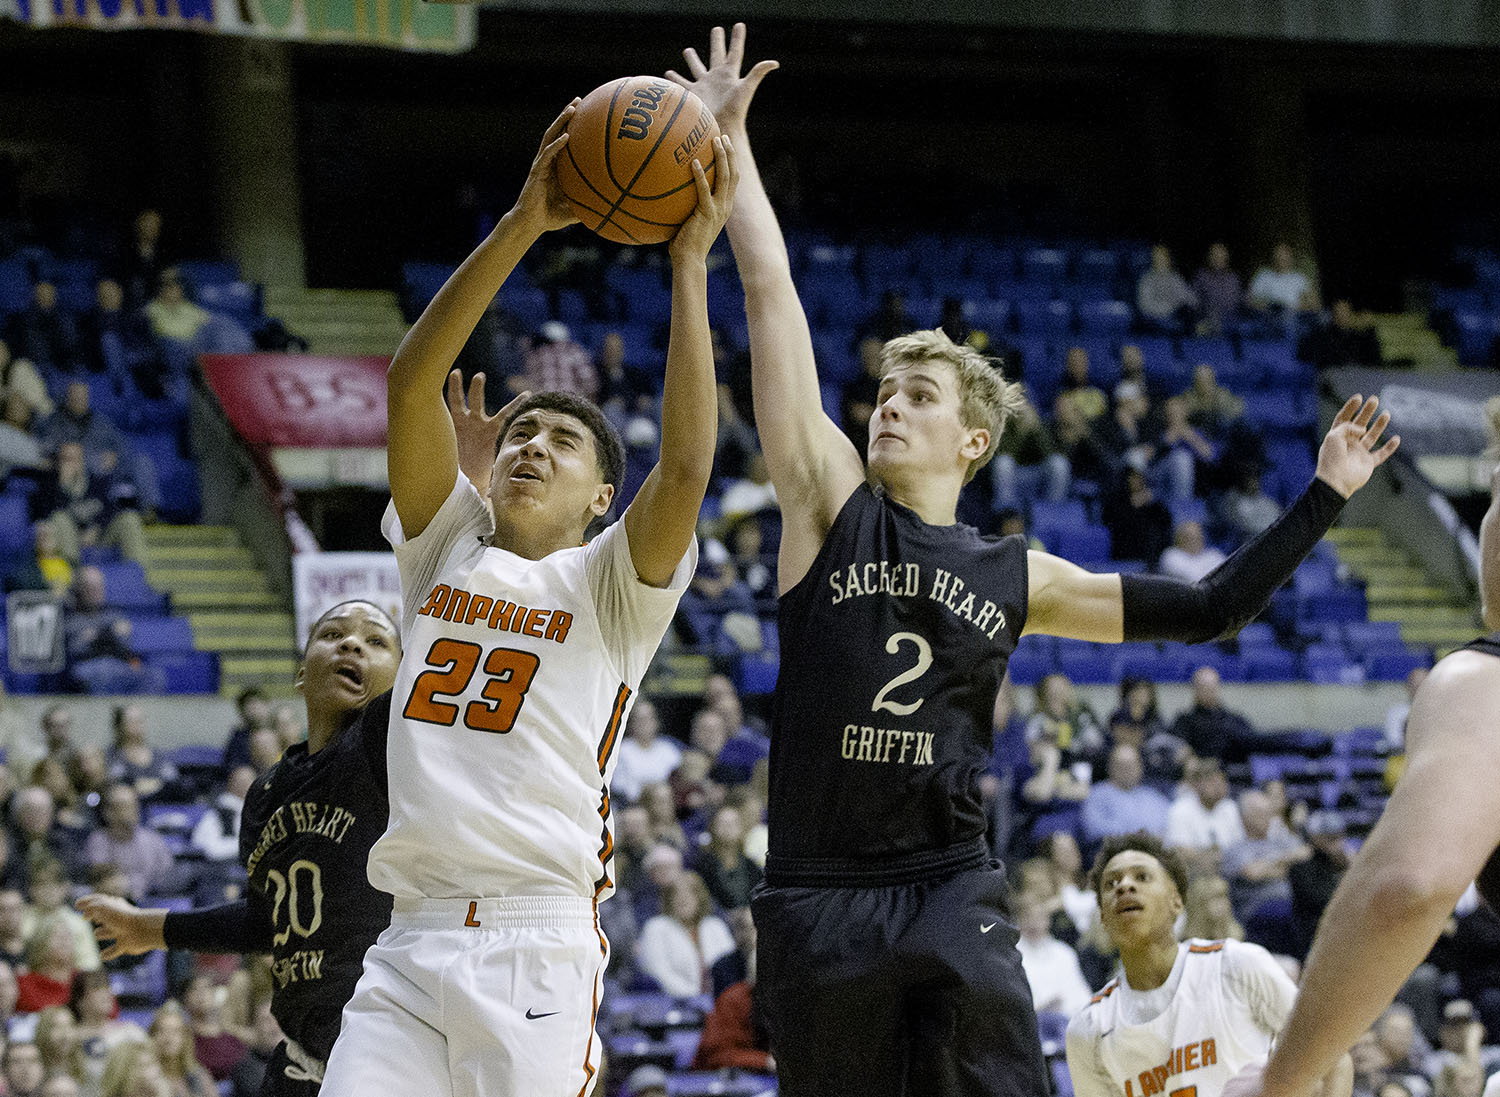 Lanphier's Tye Banks drives to the hoop during the Boys City Tournament at the Bank of Springfield Center Thursday, Jan. 17, 2019.  [Ted Schurter/The State Journal-Register]